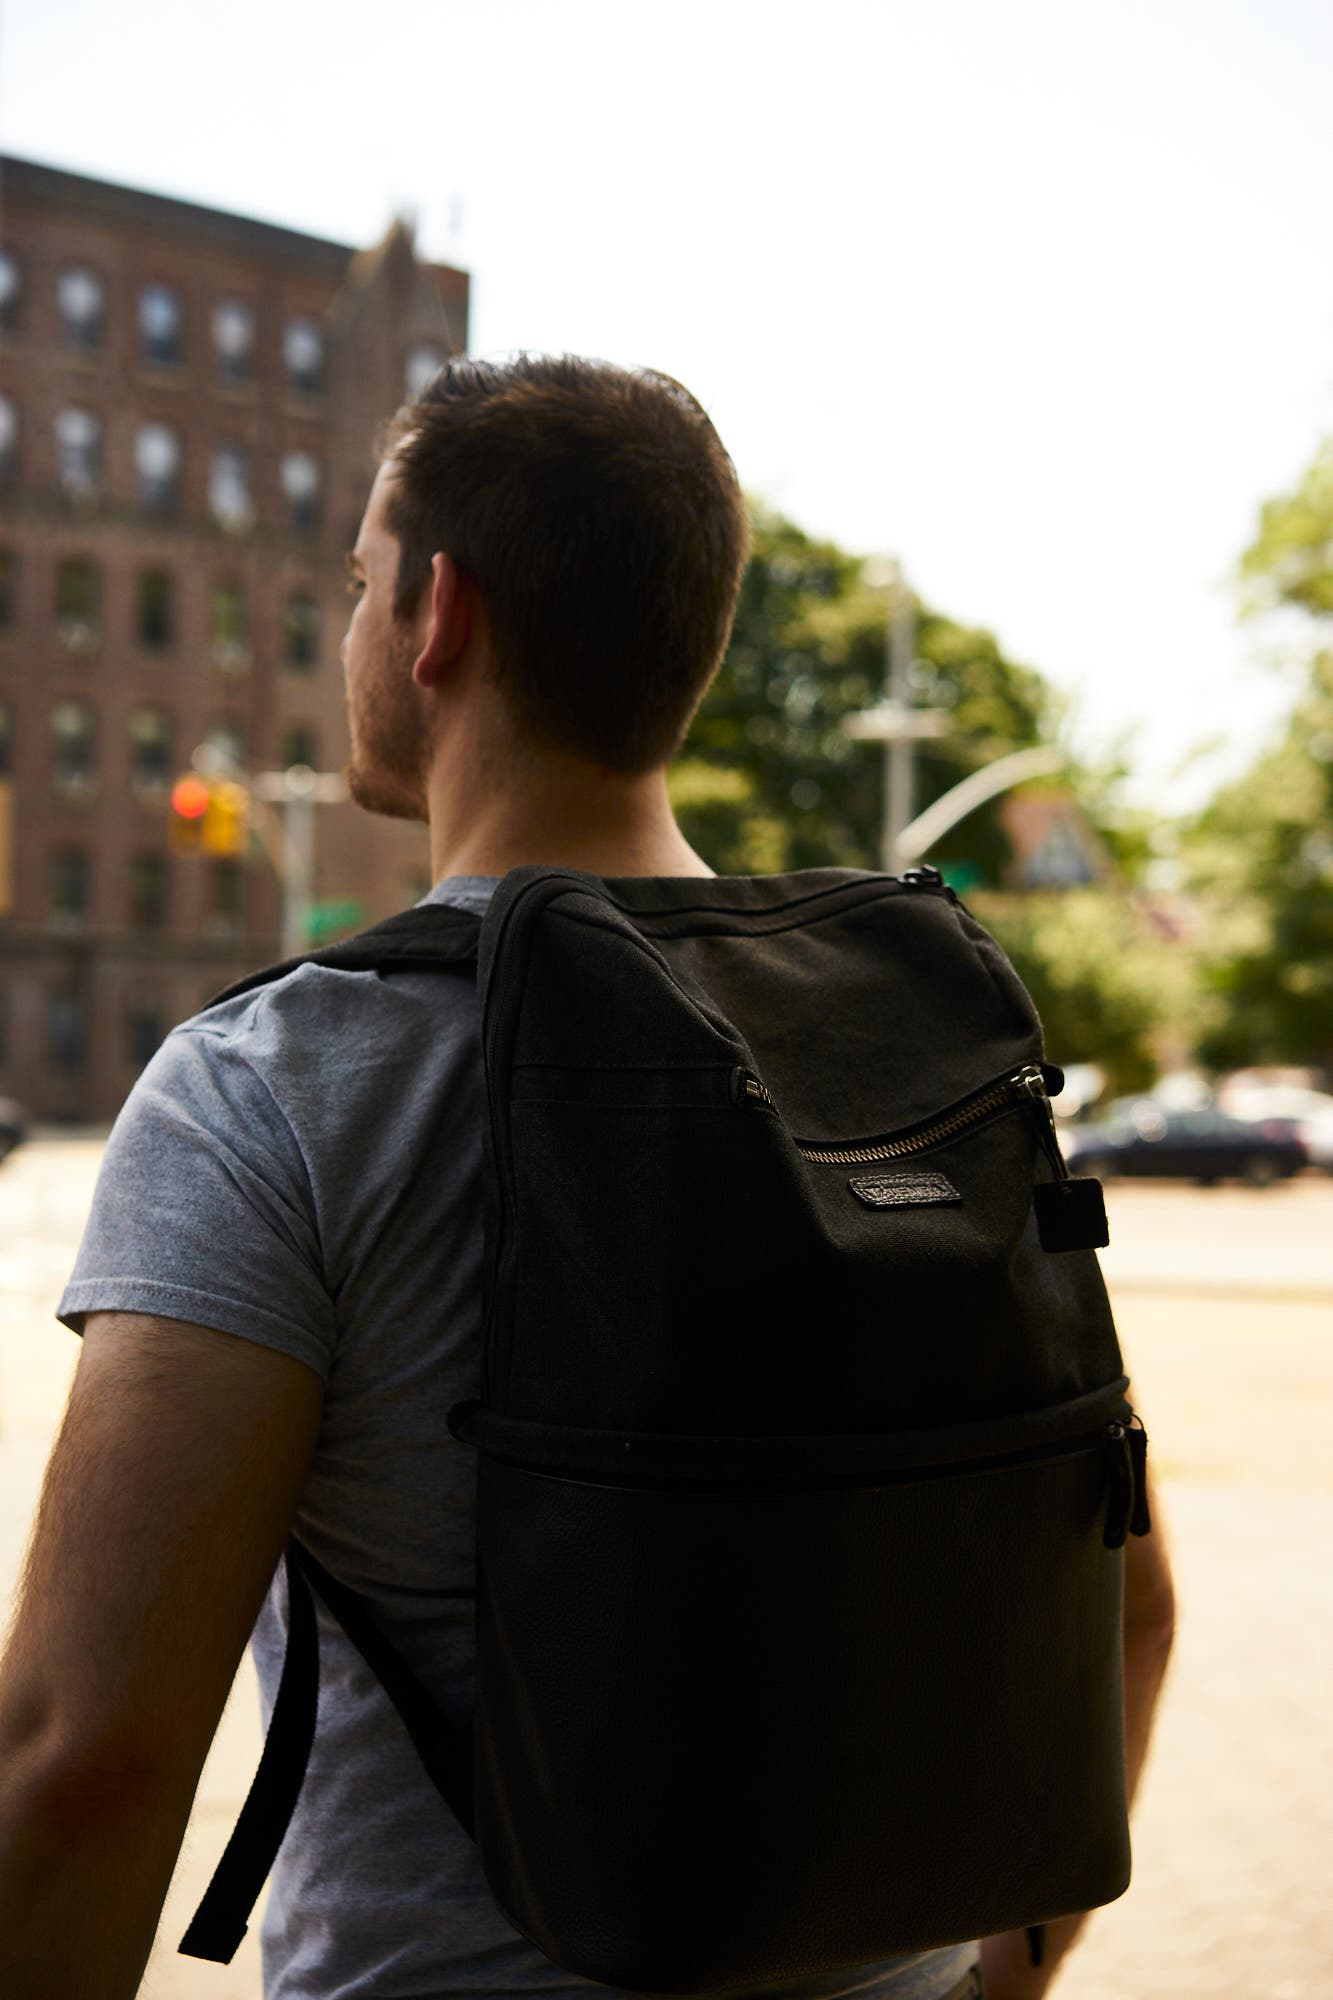 Camera Bag Review: Tenba Cooper DSLR Backpack